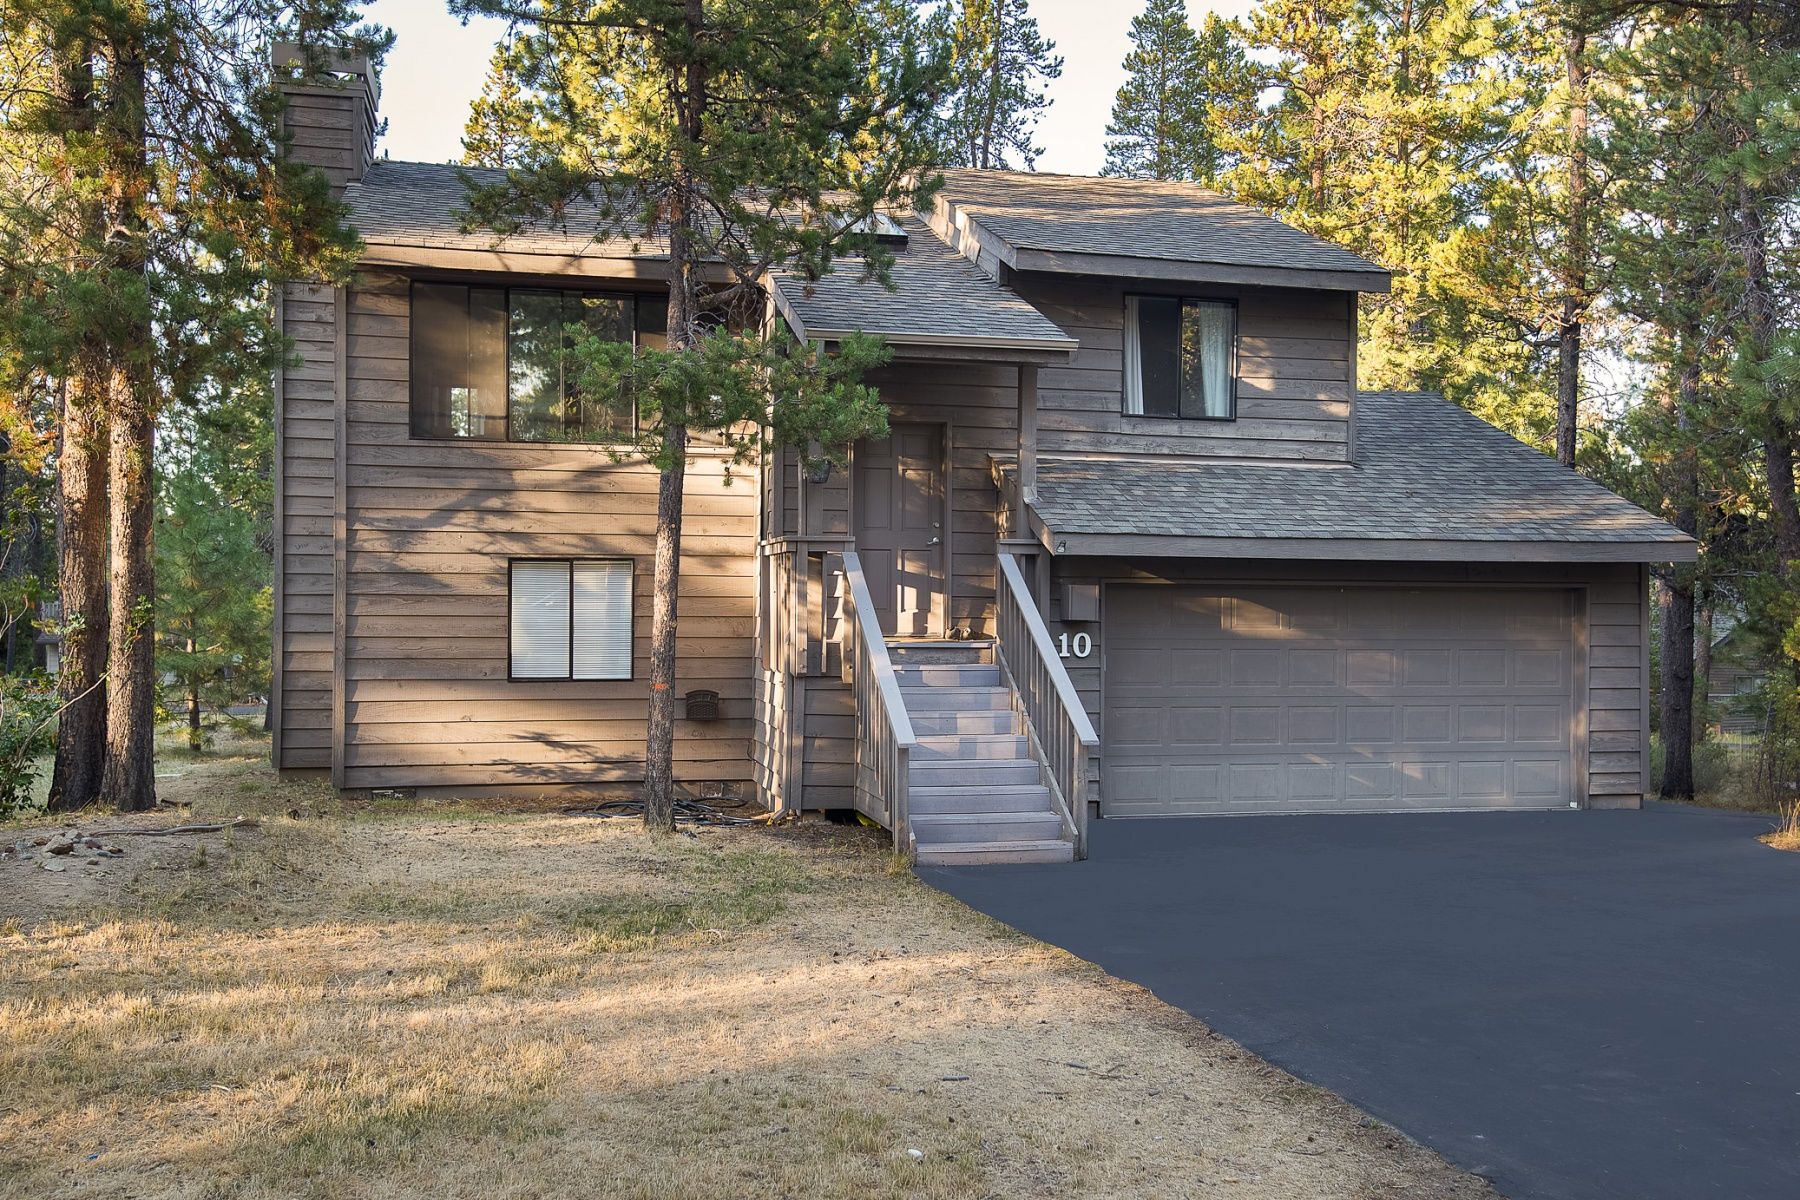 Single Family Home for Sale at 10 Indian Lane, SUNRIVER 10 Indian Ln Sunriver, Oregon, 97707 United States